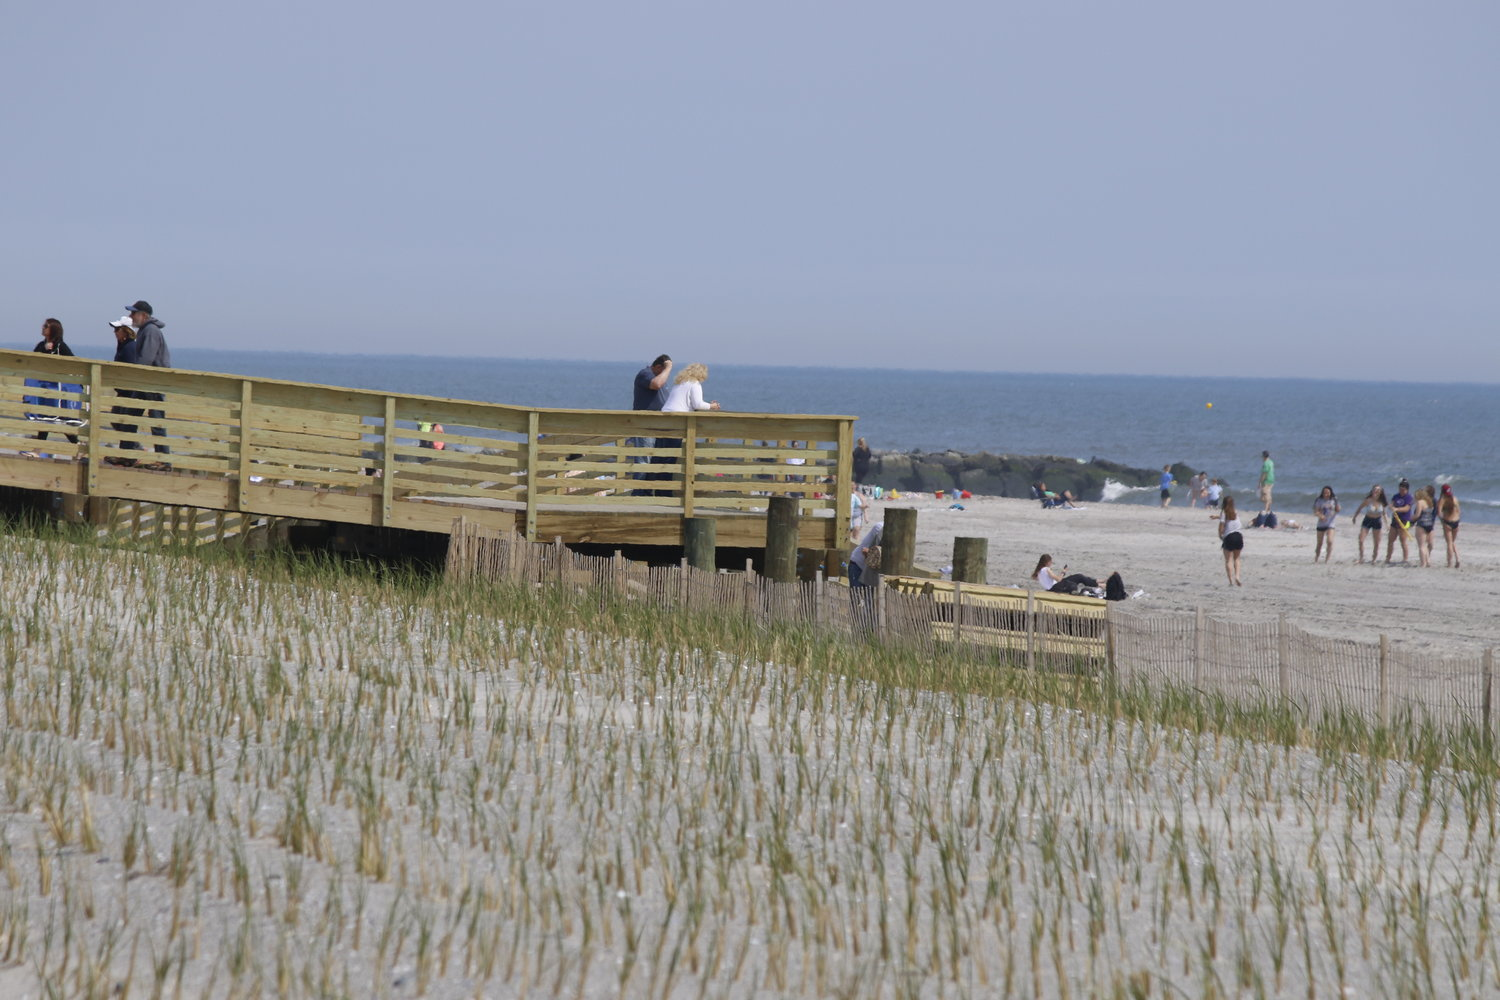 The jetties, dunes and beach extension are designed to protect seven of the nine miles of public shoreline between Jones Inlet and East Rockaway Inlet from storms and flooding.